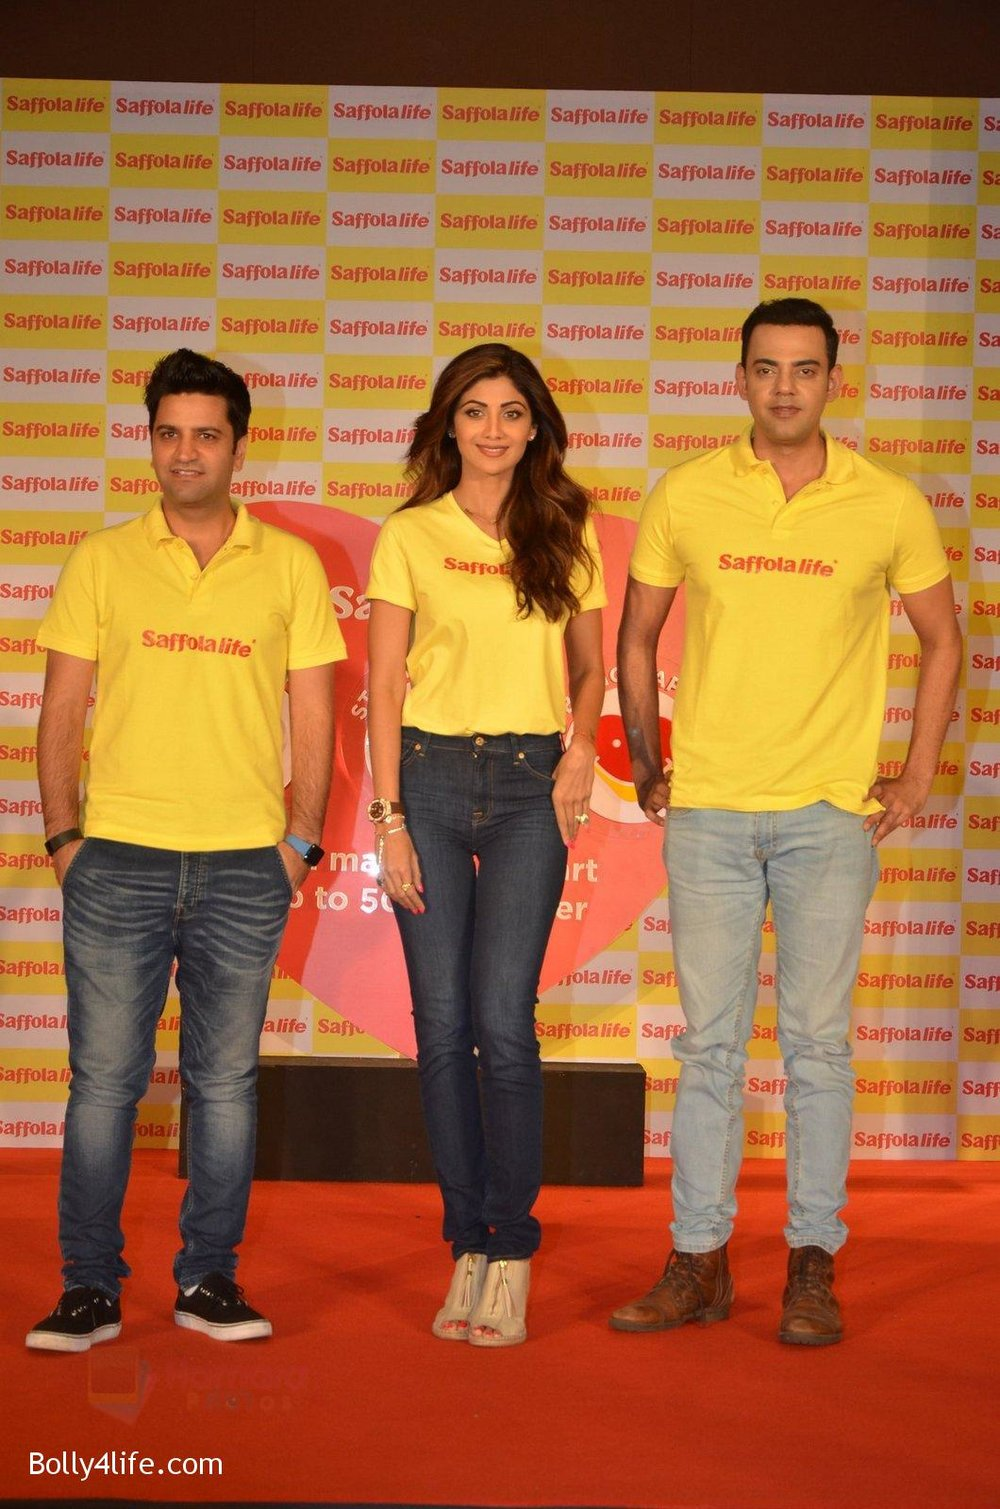 Shilpa-Shetty-Kunal-Kapur-Cyrus-Sahukar-during-the-World-Heart-Day-program-organized-by-Saffola-Life-in-Mumbai-on-28th-Sept-2016-59.jpg